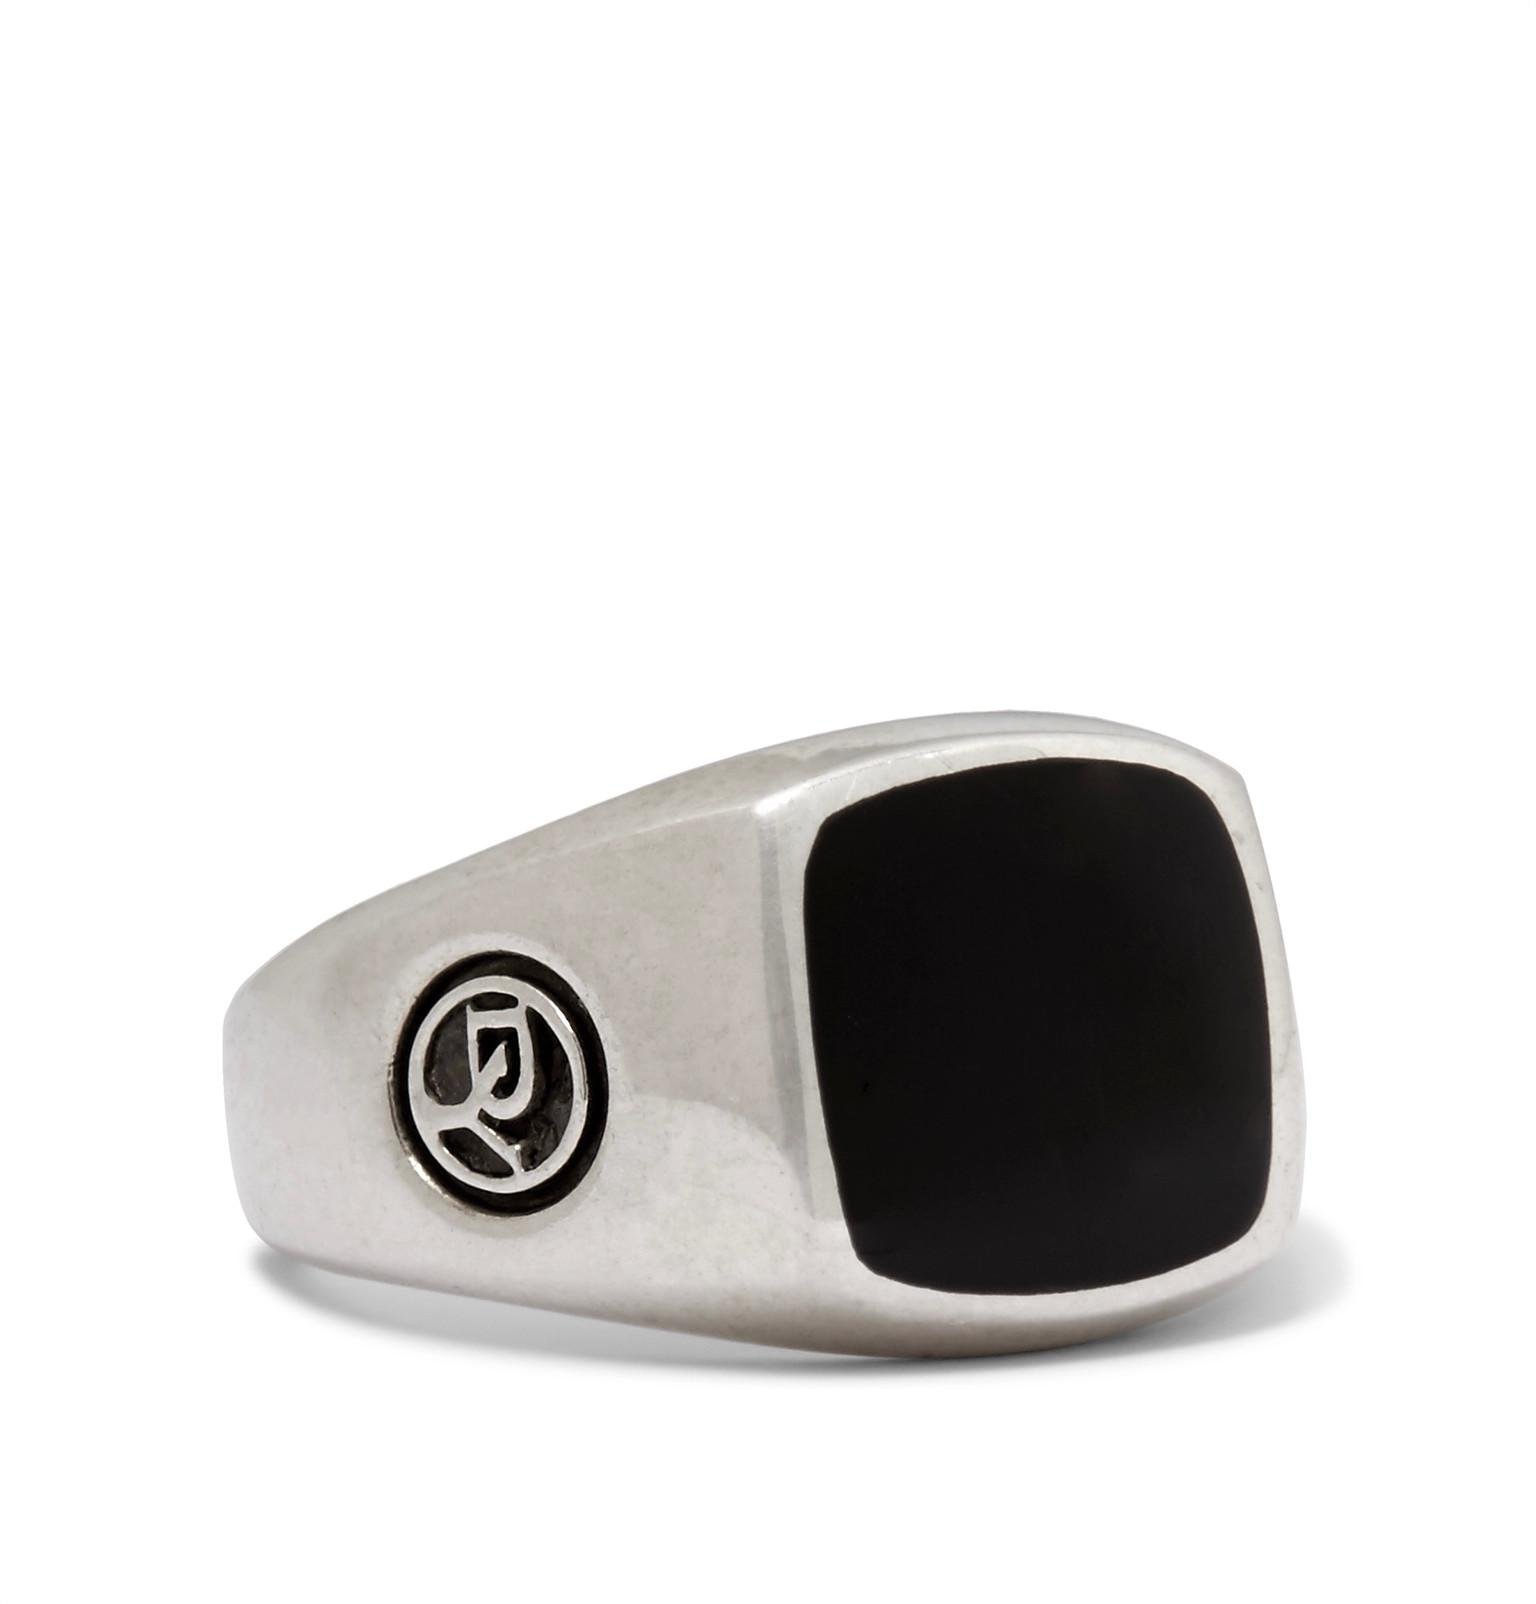 David Yurman Heirloom Sterling Silver Onyx Signet Ring - Black QMBwKNnGP3